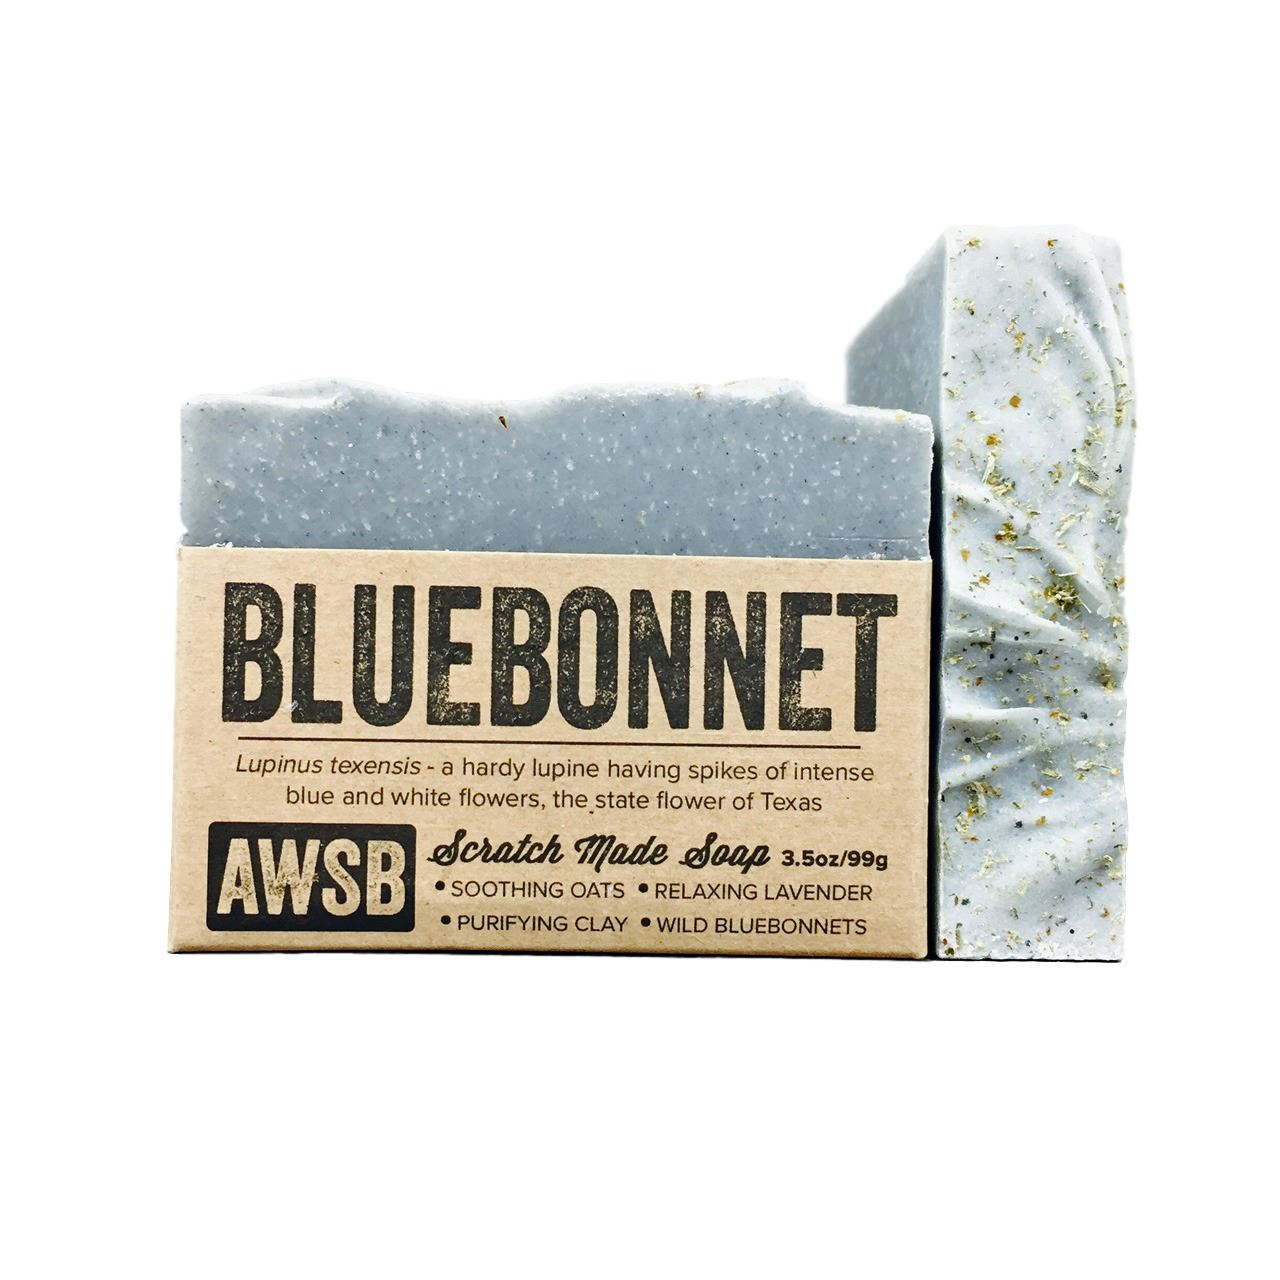 bluebonnet soap bluebonnet,natural,soap,organic,lavender,lavandin,essential oils,Texas,blue,relaxing,bentonite,clay